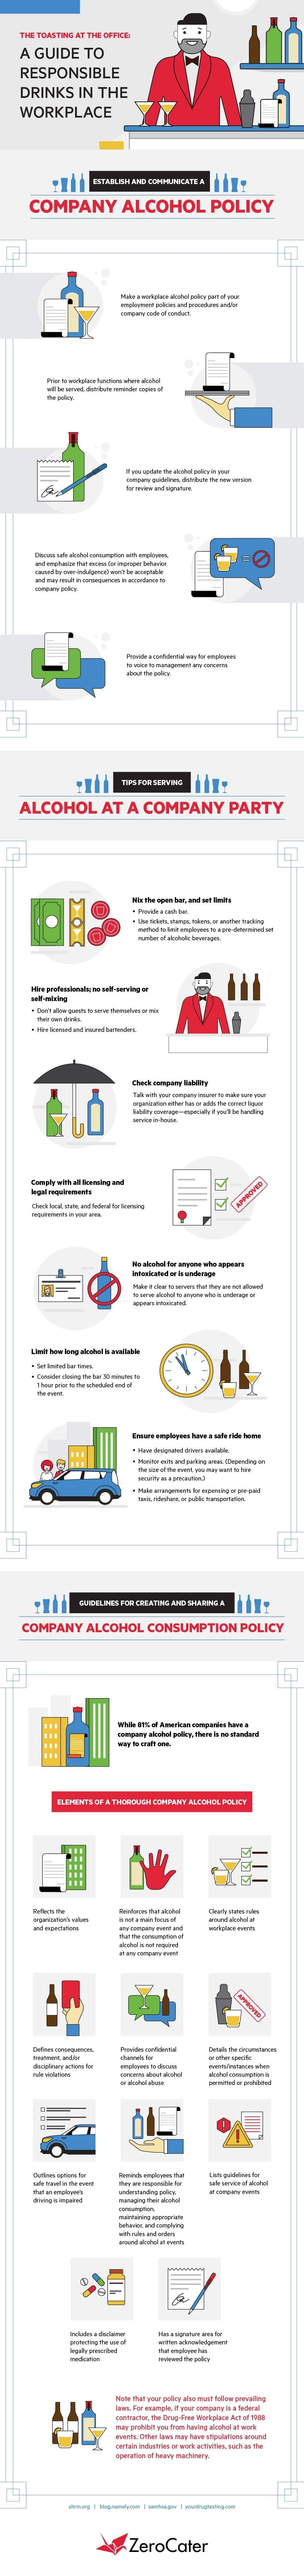 Toasting at The Office: A Guide to Responsible Drinks in the Workplace #infographic